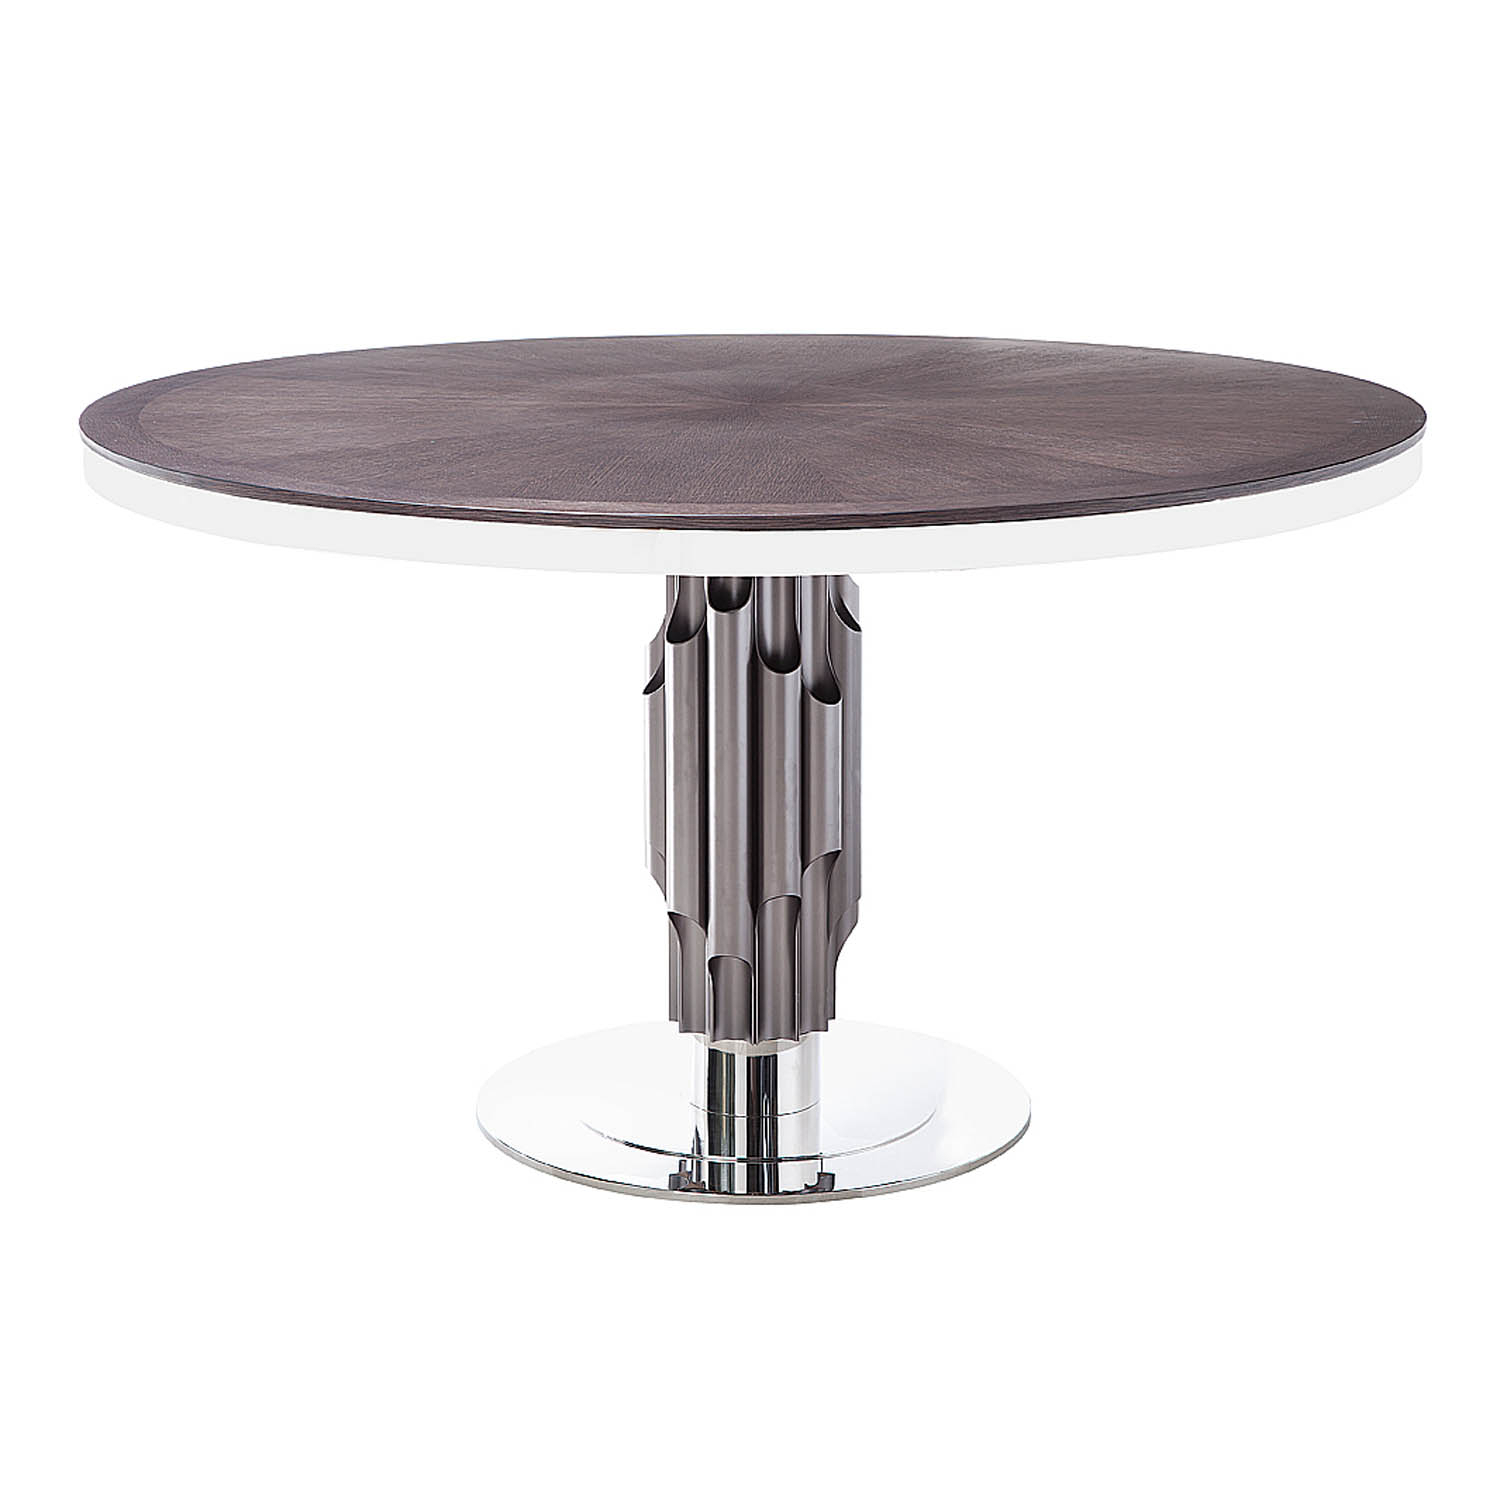 Aria Dining Table Regarding Most Up To Date Aria 5 Piece Dining Sets (View 8 of 20)